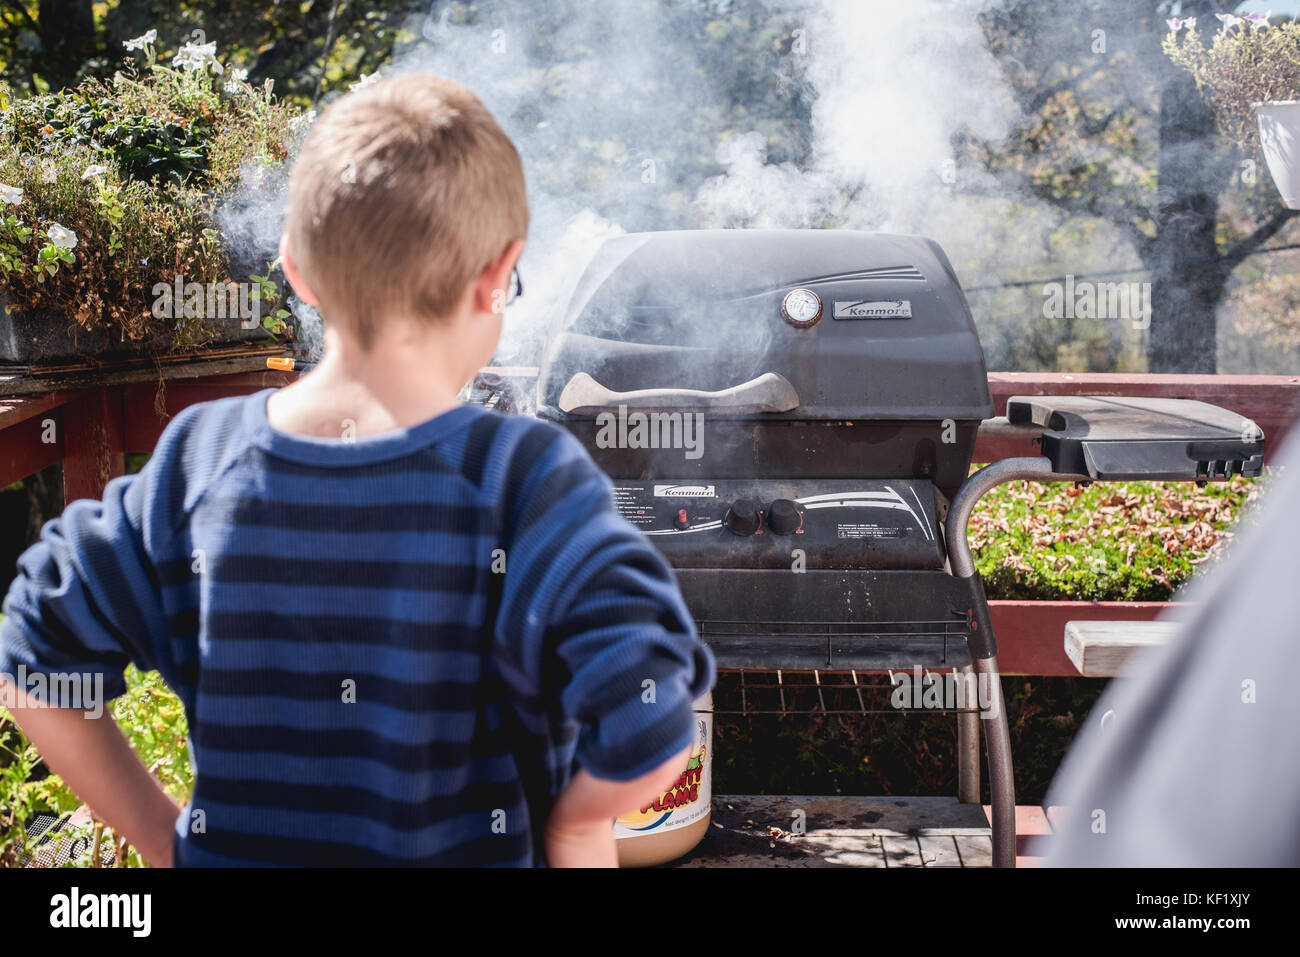 10-year old boy looking at grill with smoke - Stock Image